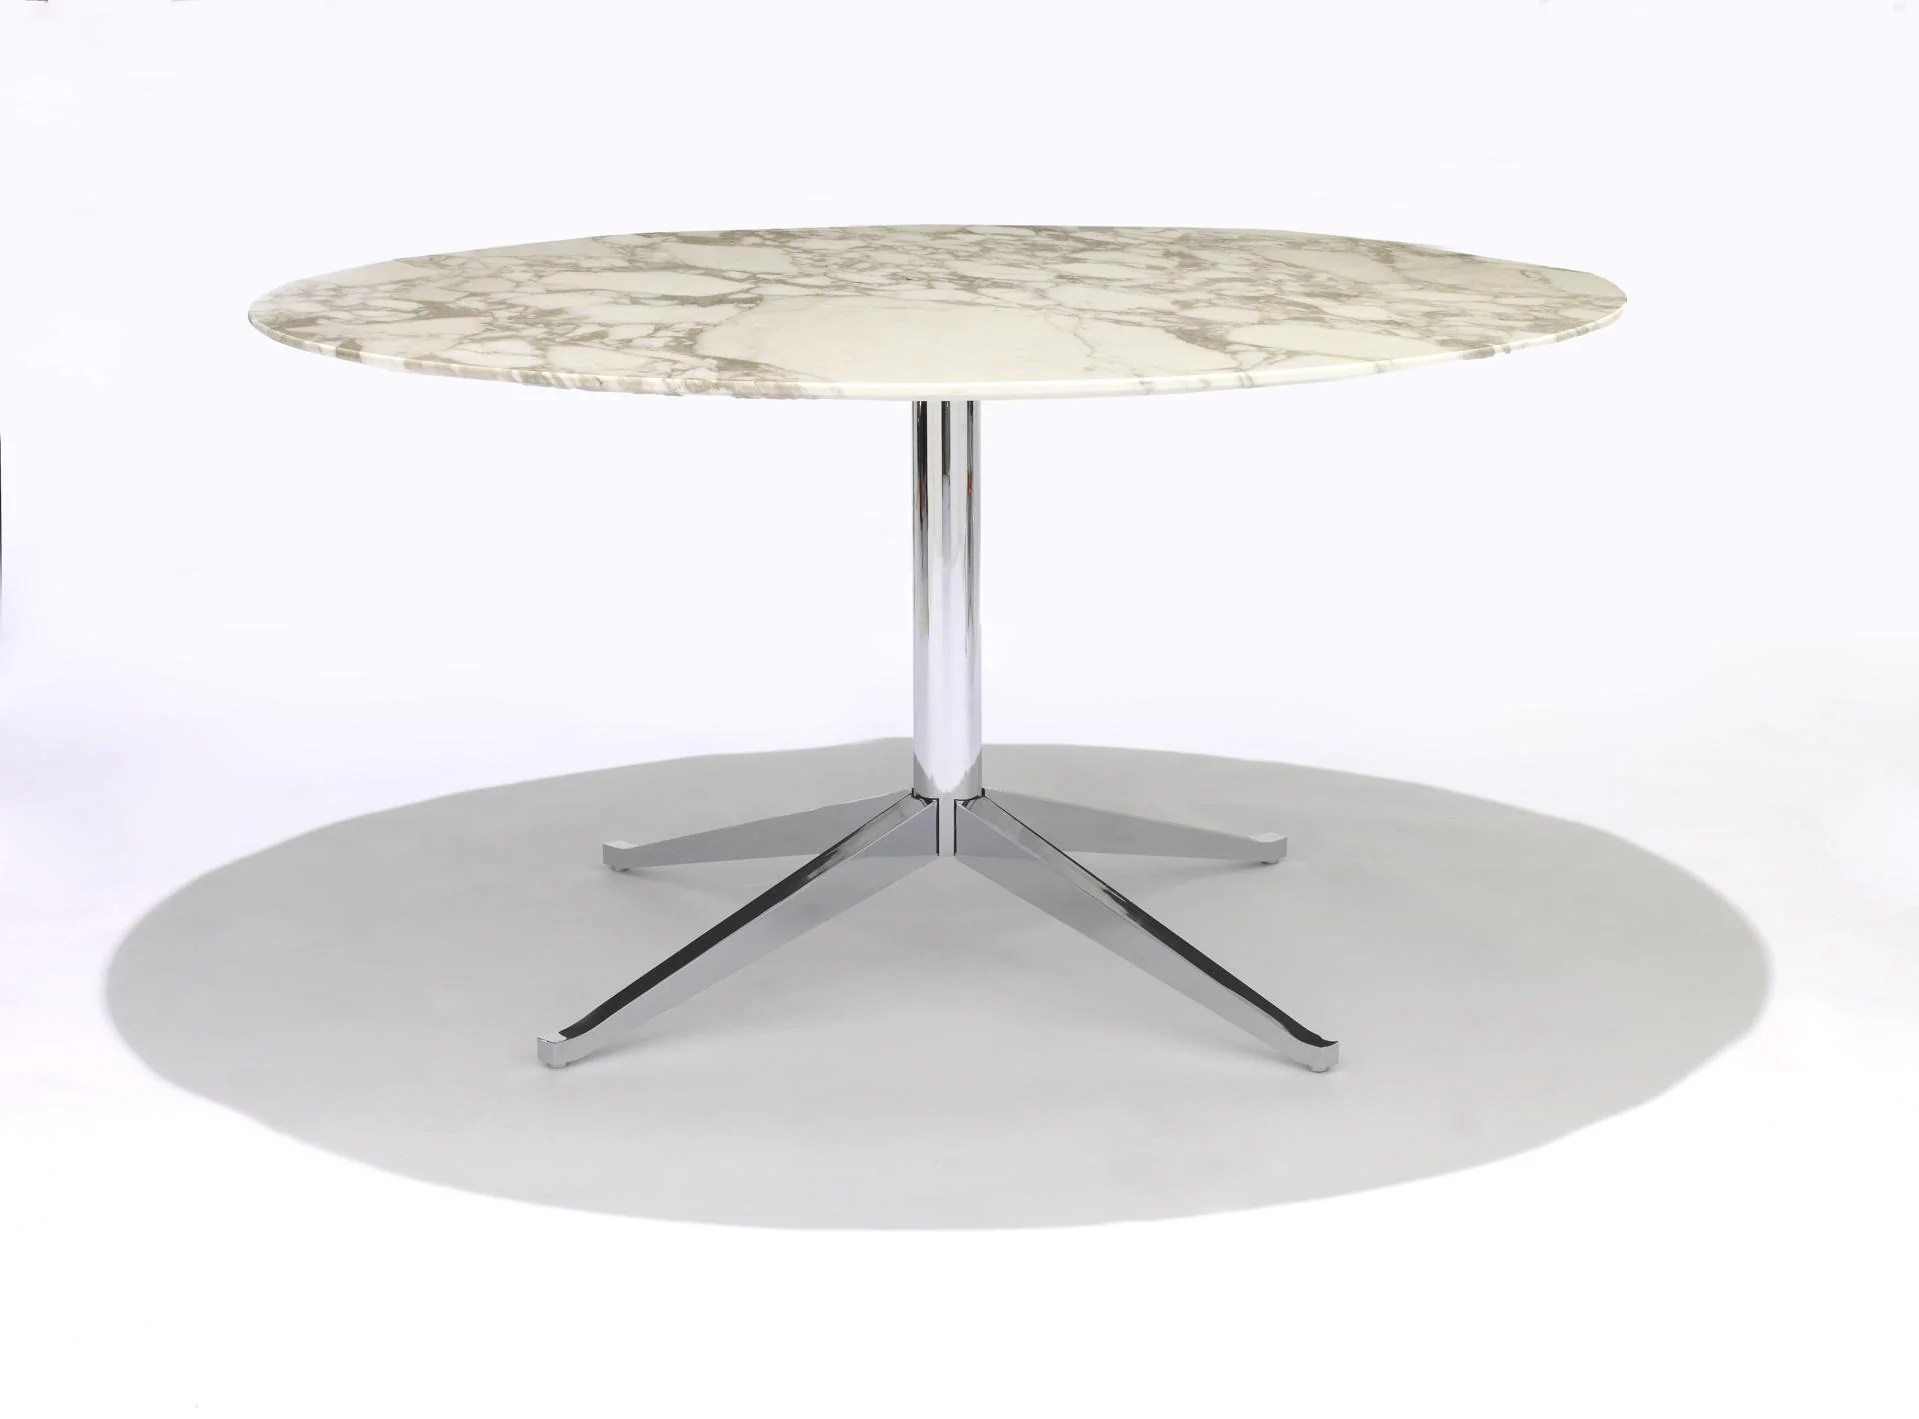 Knoll Table Florence Knoll Round Table